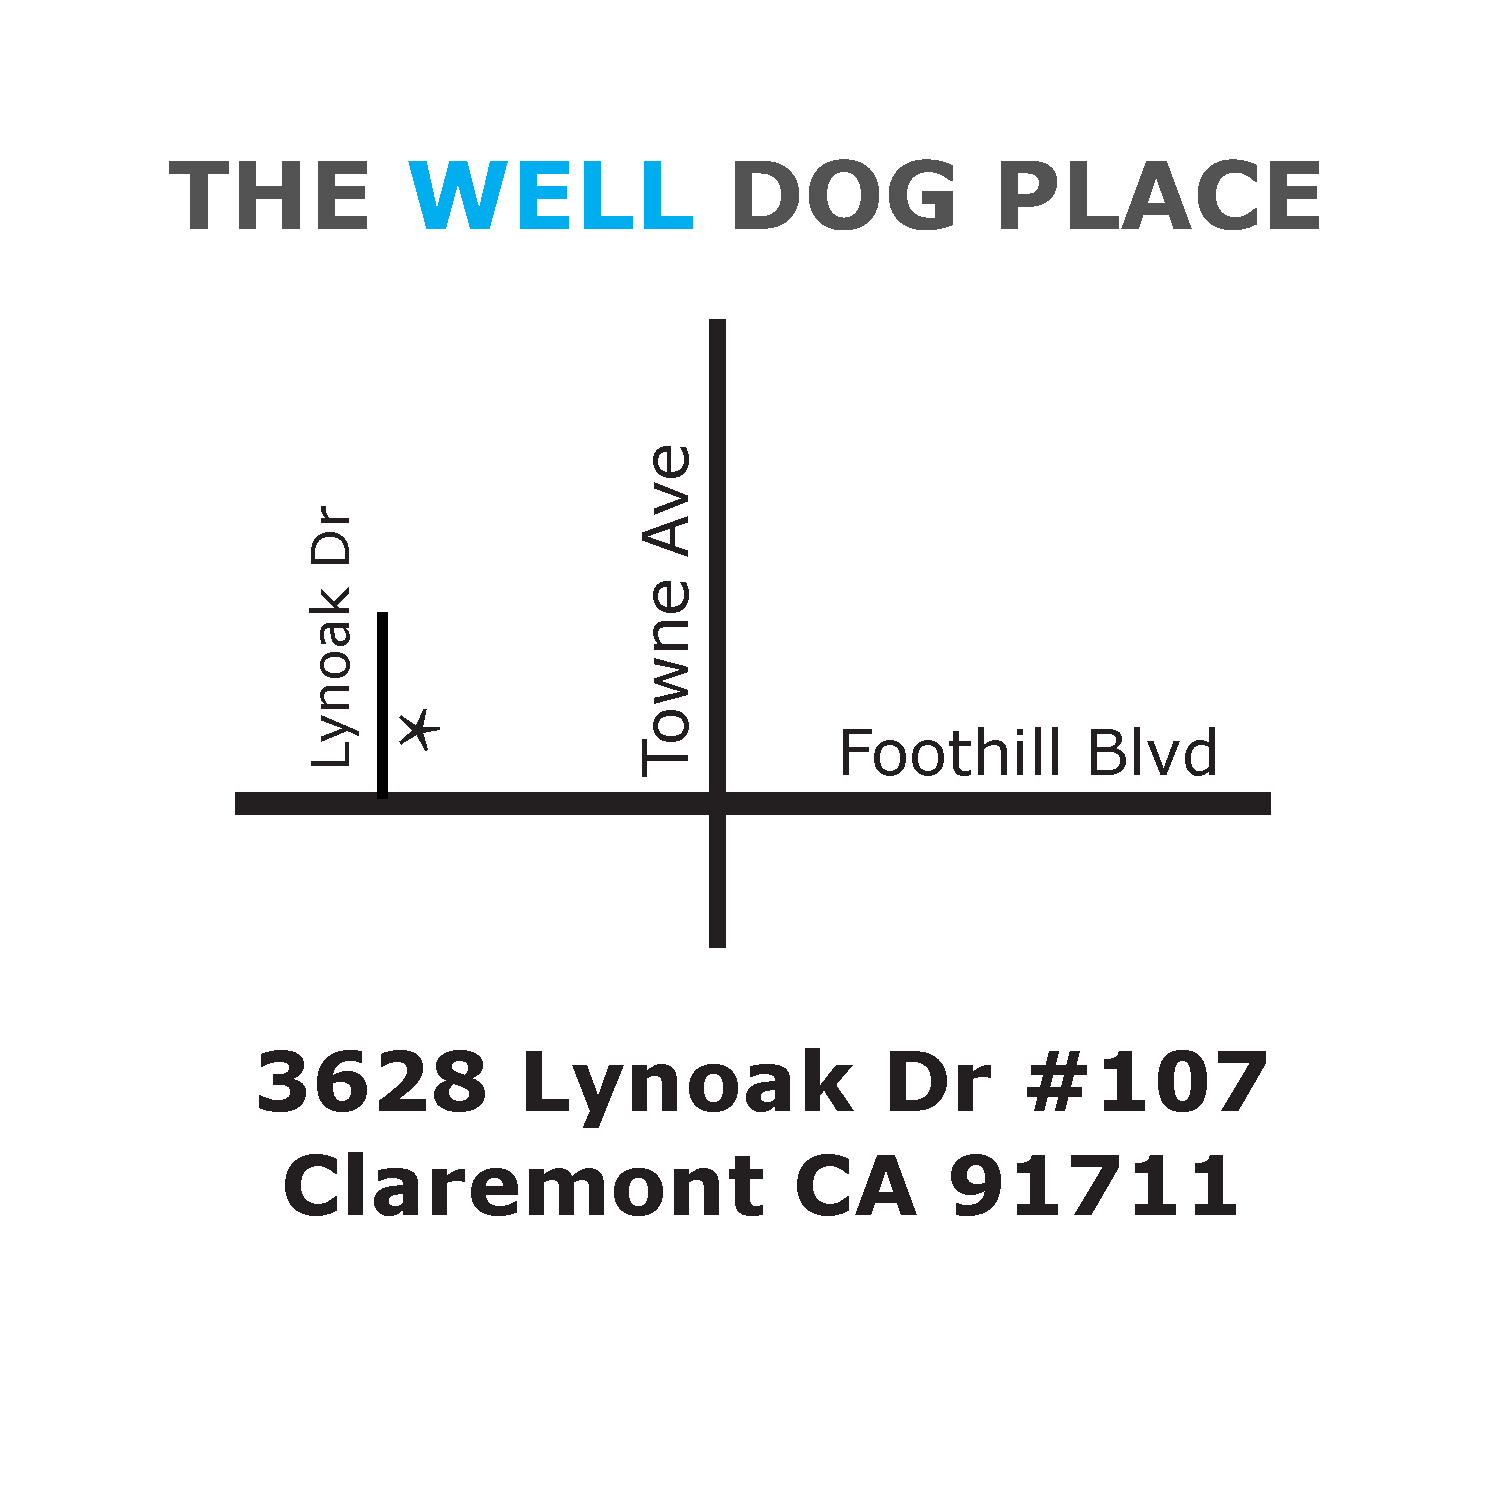 Dr. Ken Tudor's Well Dog Place - Location - Southern California